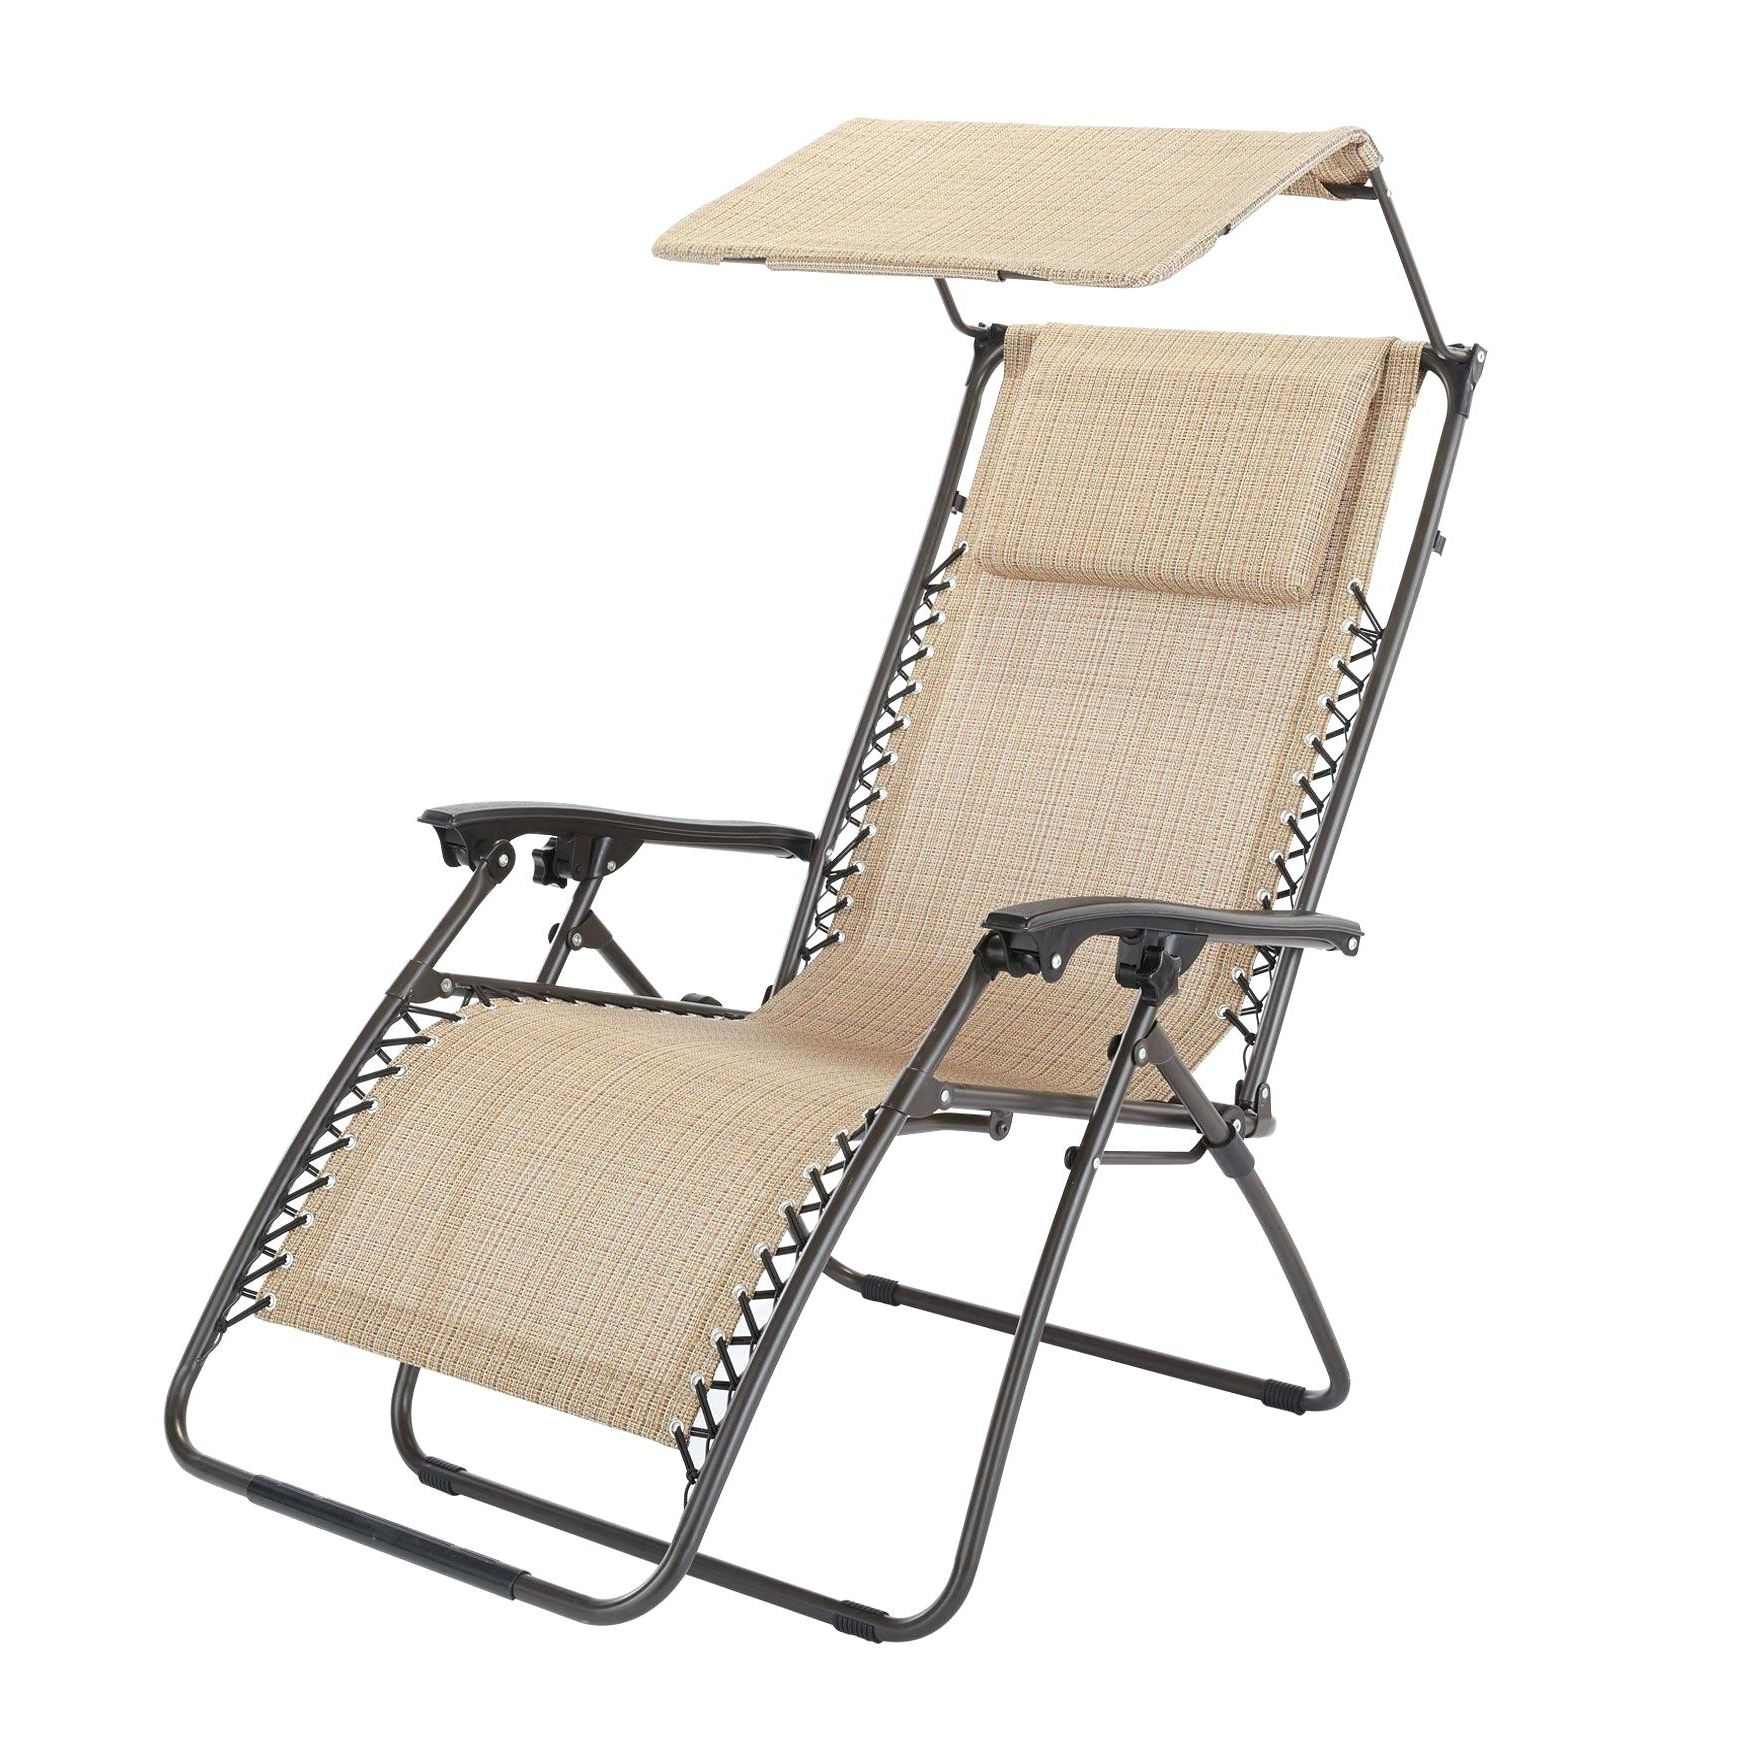 Well Known Caravan Sportsbeige Zero Gravity Chairs Intended For 0 Gravity Chair Zero Review – Adong (View 13 of 25)